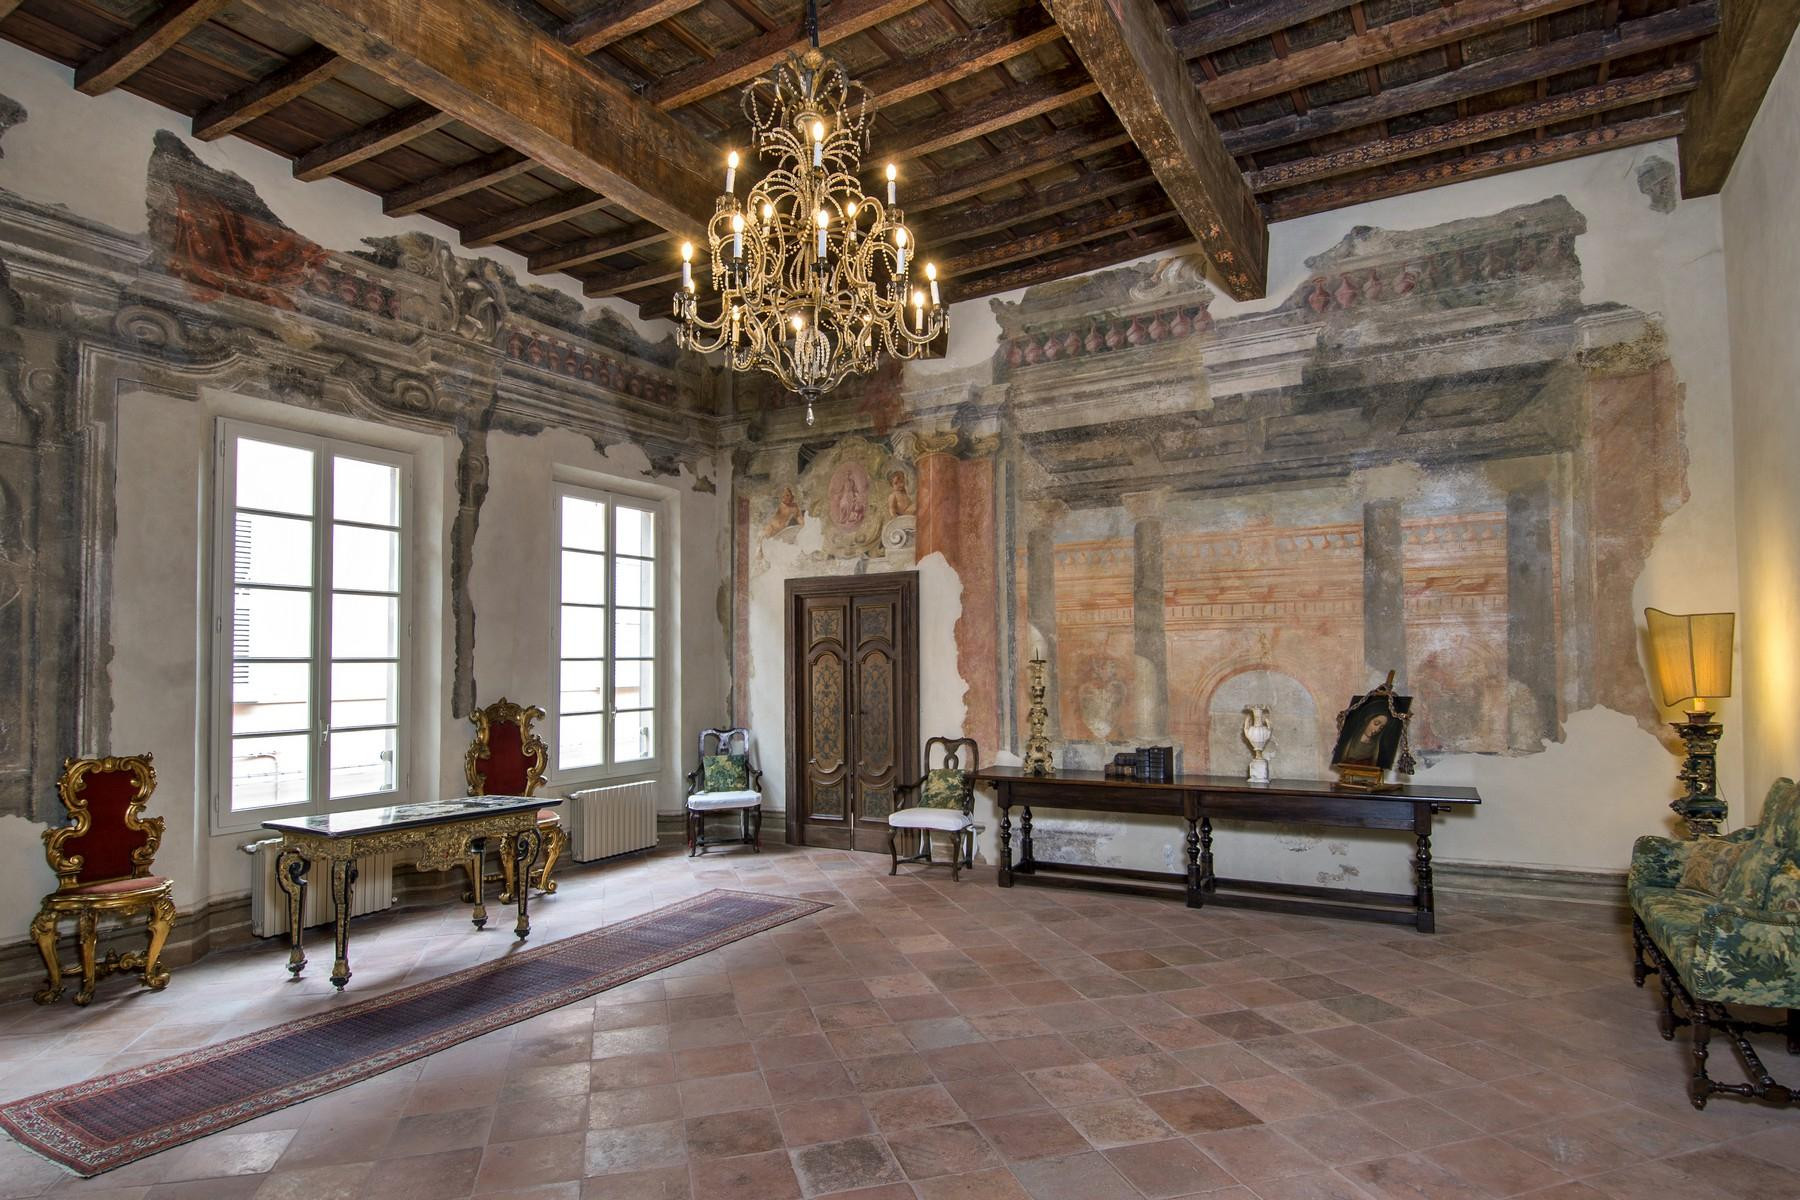 Magnificent historic palace in the heart of Reggio Emilia - 3